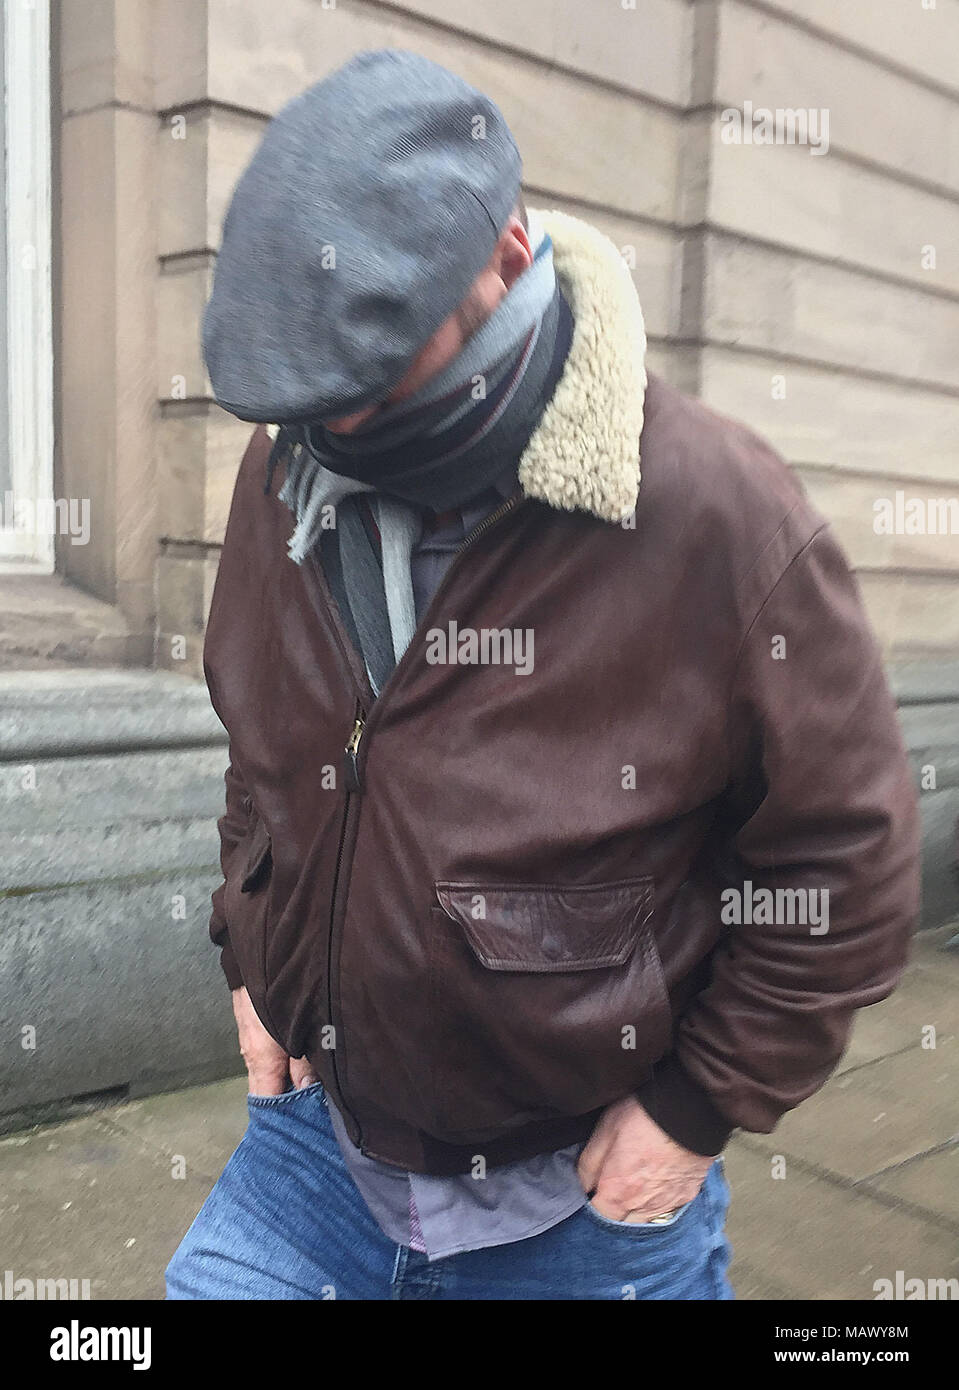 8c58abe9a BEST QUALITY AVAILABLE Pascal Blasio of Gillingham, Kent, leaving Wirral  MagistratesÕ Court in Birkenhead charged with causing an explosion likely  to ...